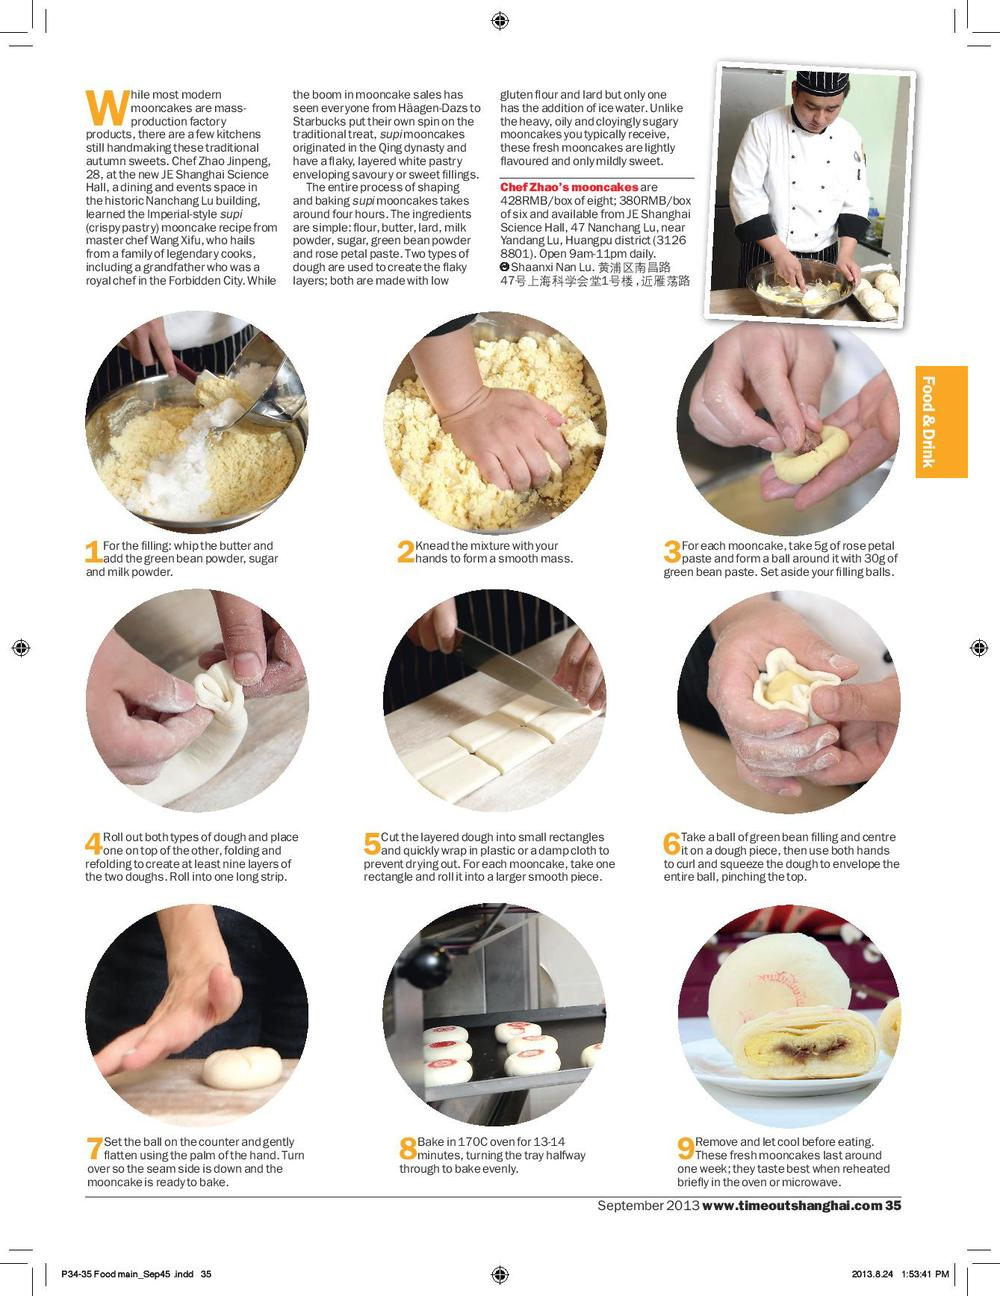 P34-35 Food main_How to make mooncakes Sept 2013-page-002.jpg